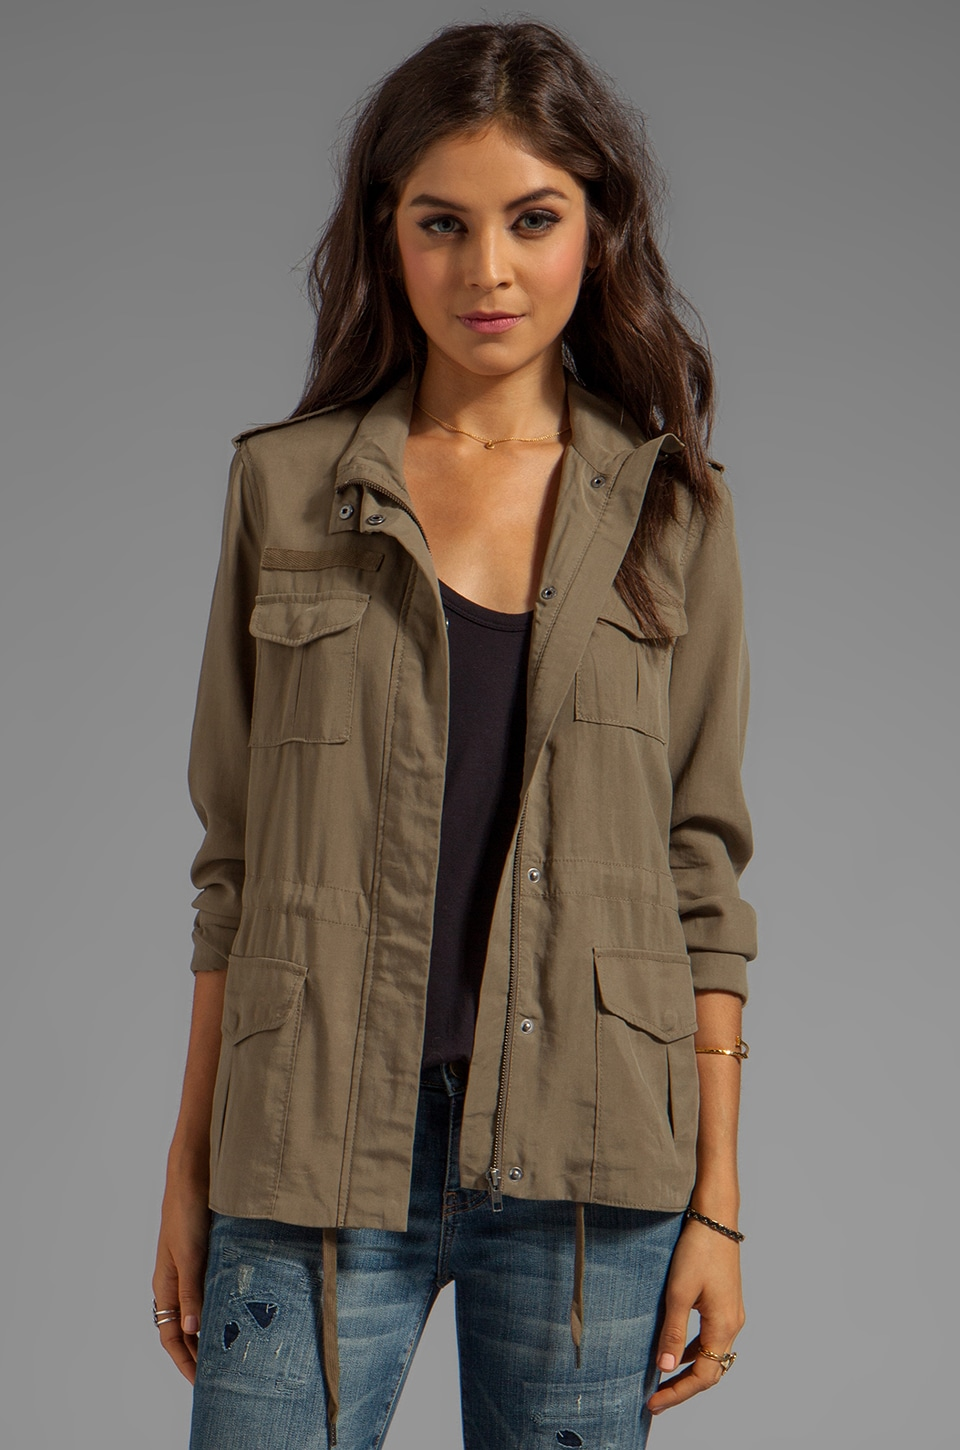 Soft Joie Elexus Military Jacket in Capers